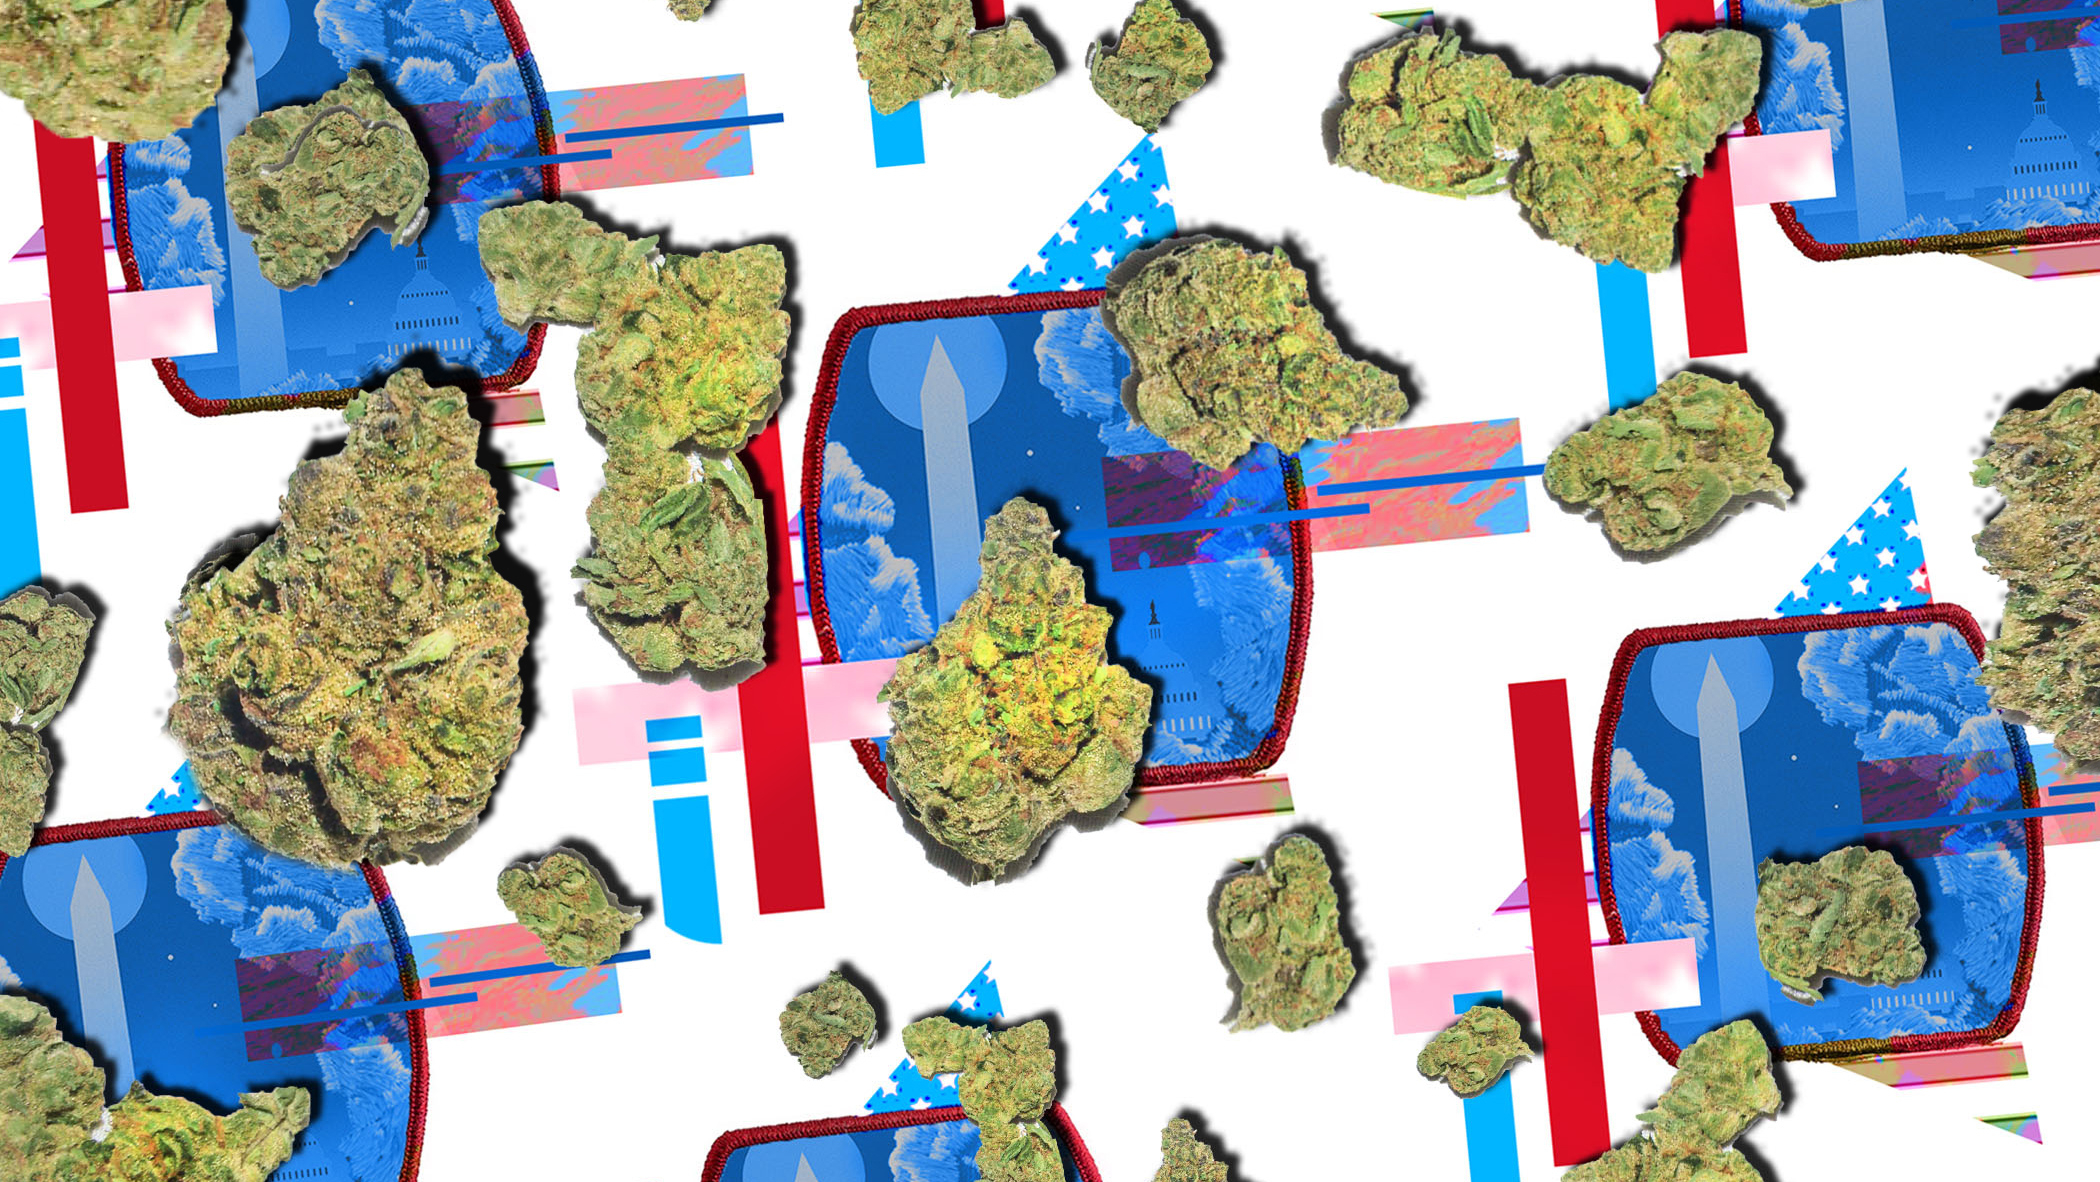 The Rolling Stone Guide to Legal Pot: Washington, D.C. – Rolling Stone